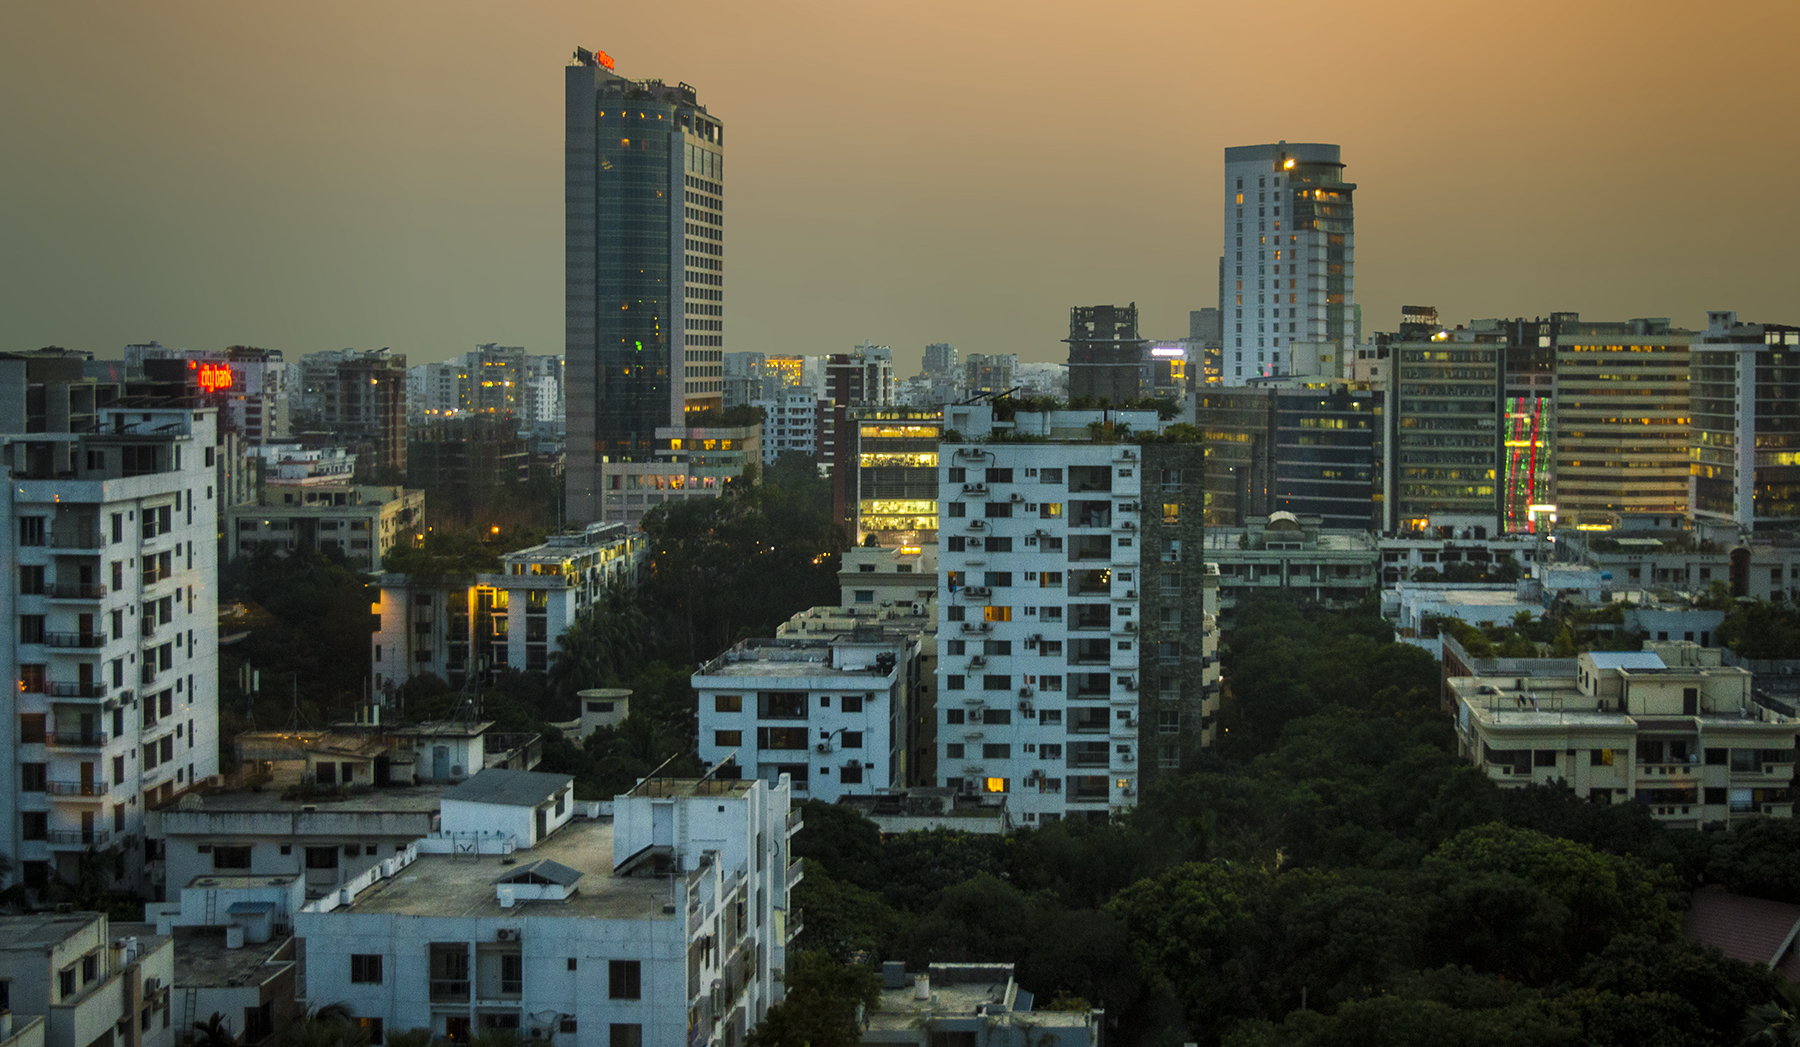 Dhaka grew into a metropolitan area with a population of more than 15 million and the world's 3rd most densely populated city. Credit: Wikimedia Commons